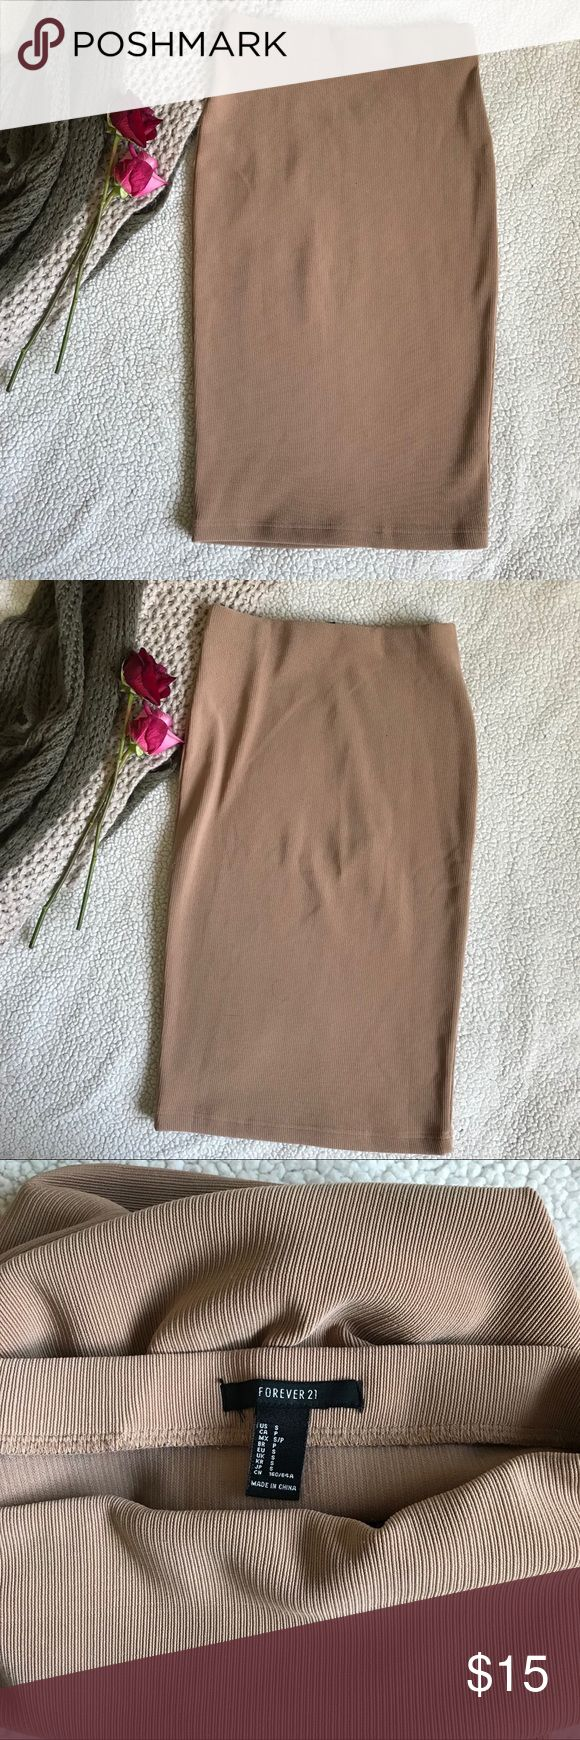 Tan Pencil Skirt Beautiful tanned pencil skirt in the size small. It is stretchy and very comfortable.  Ships within 24 HRS!! Forever 21 Skirts Pencil